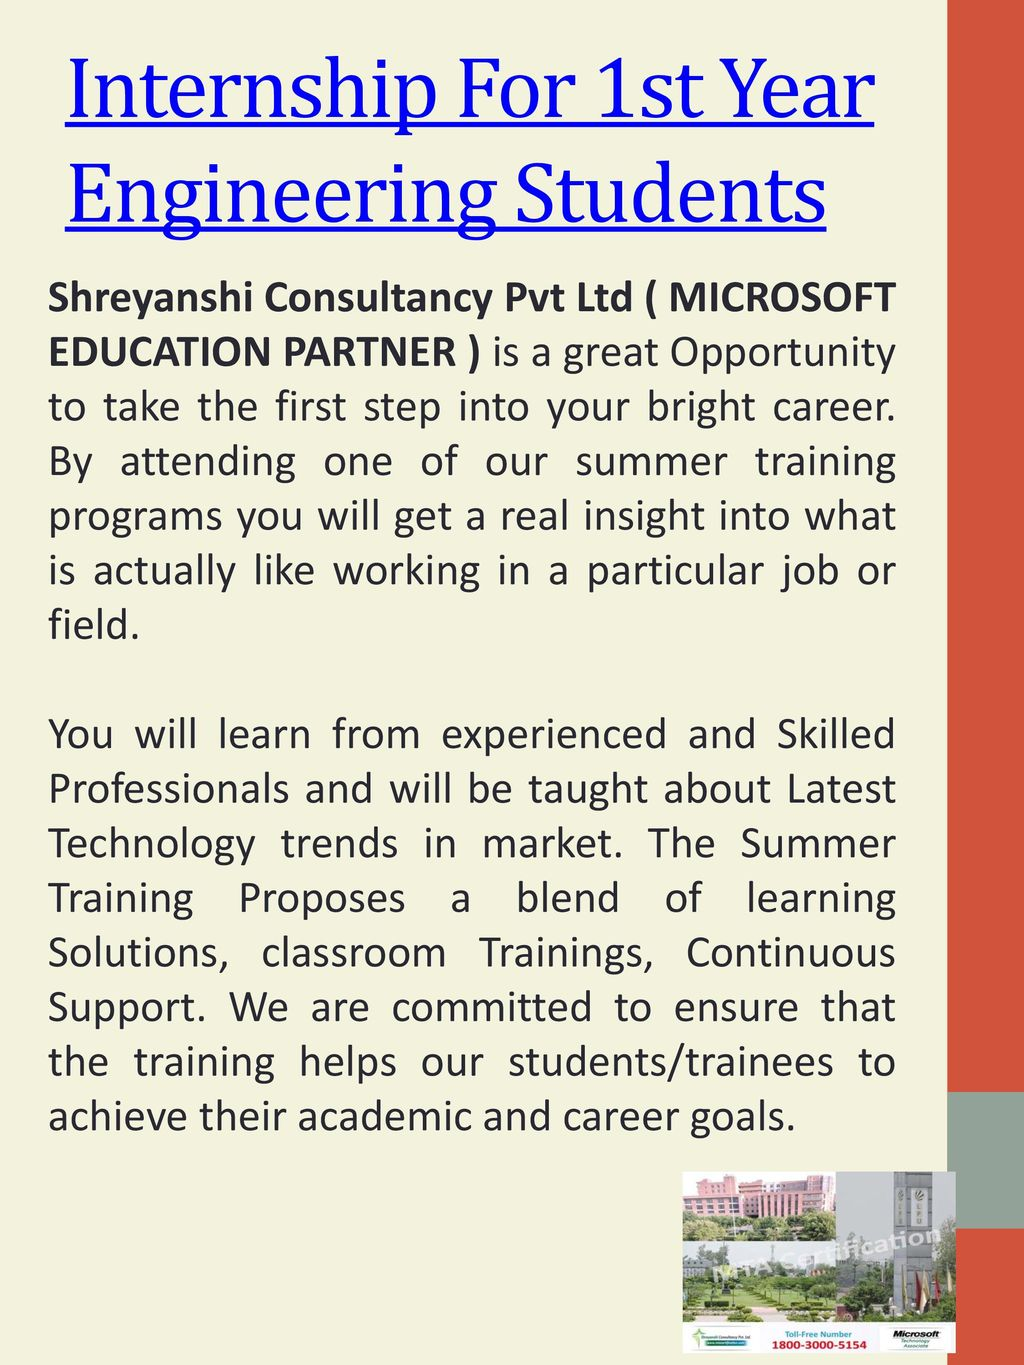 internship for first year engineering students